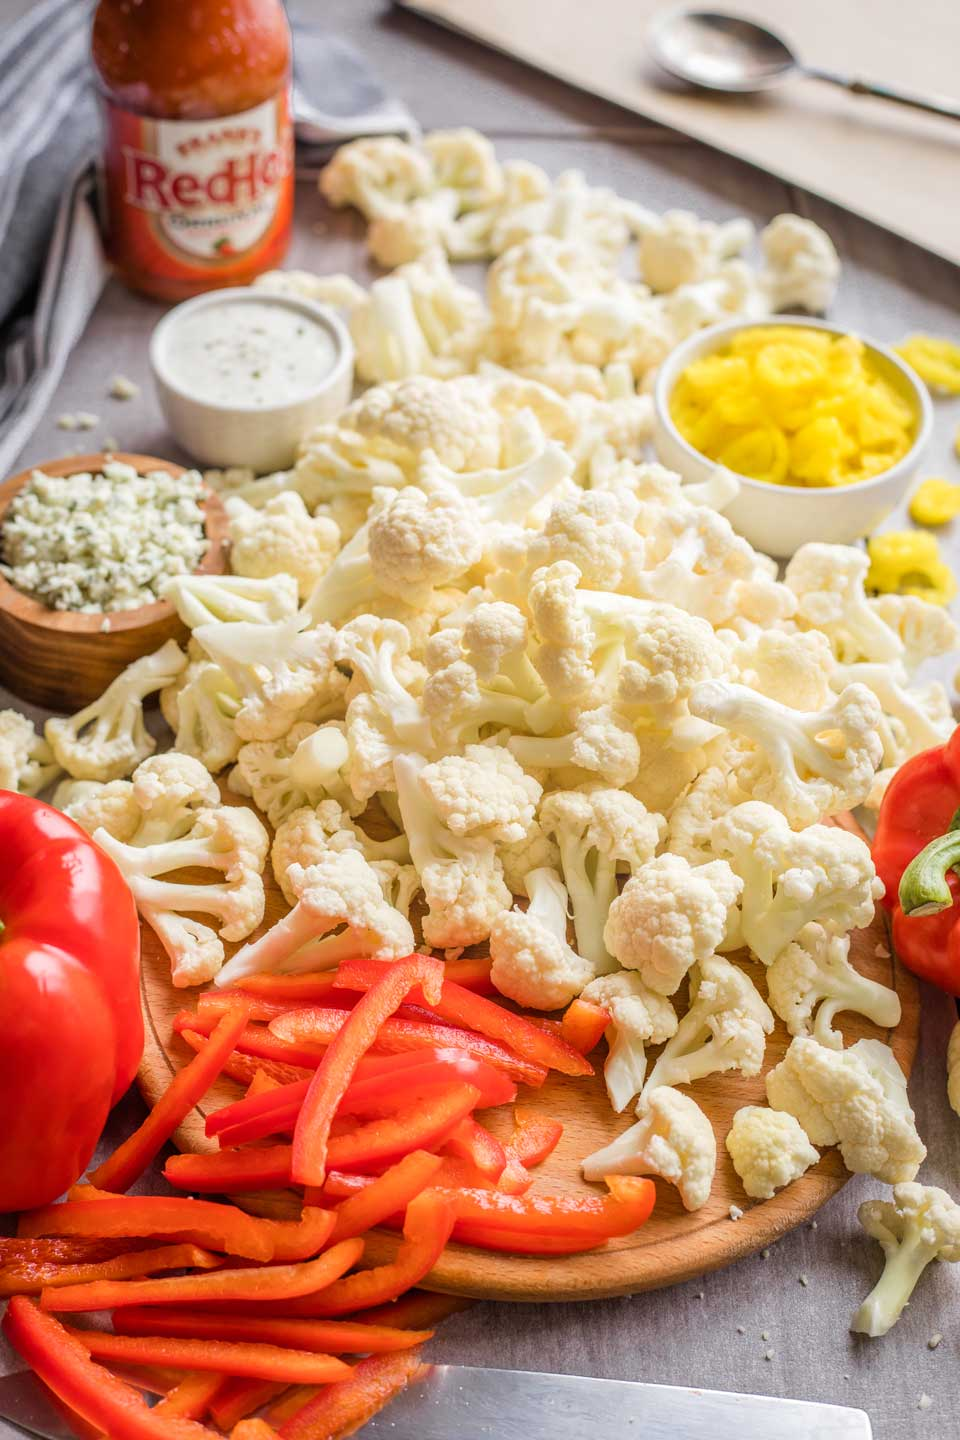 recipe ingredients - cascading pile of cauliflower, slices red peppers, bowls of banana peppers and blue cheese and ranch dressing, bottle of Franks' hot sauce